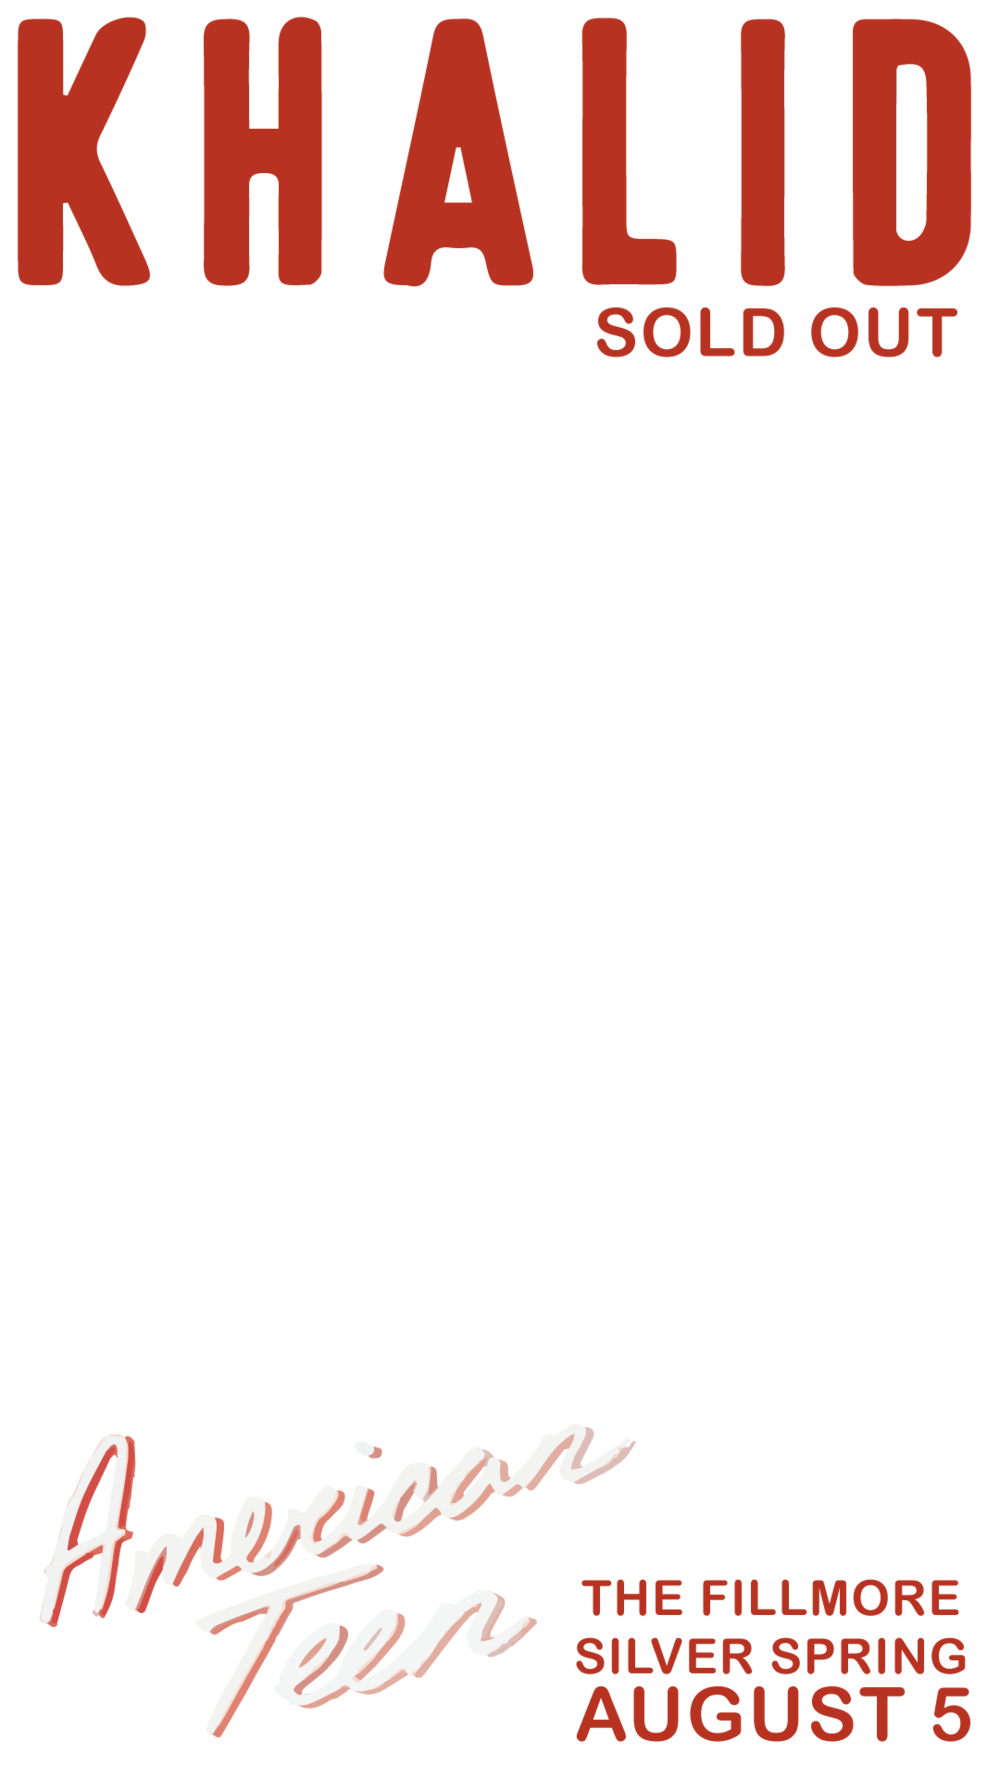 khalid_geofilter_aug5.png